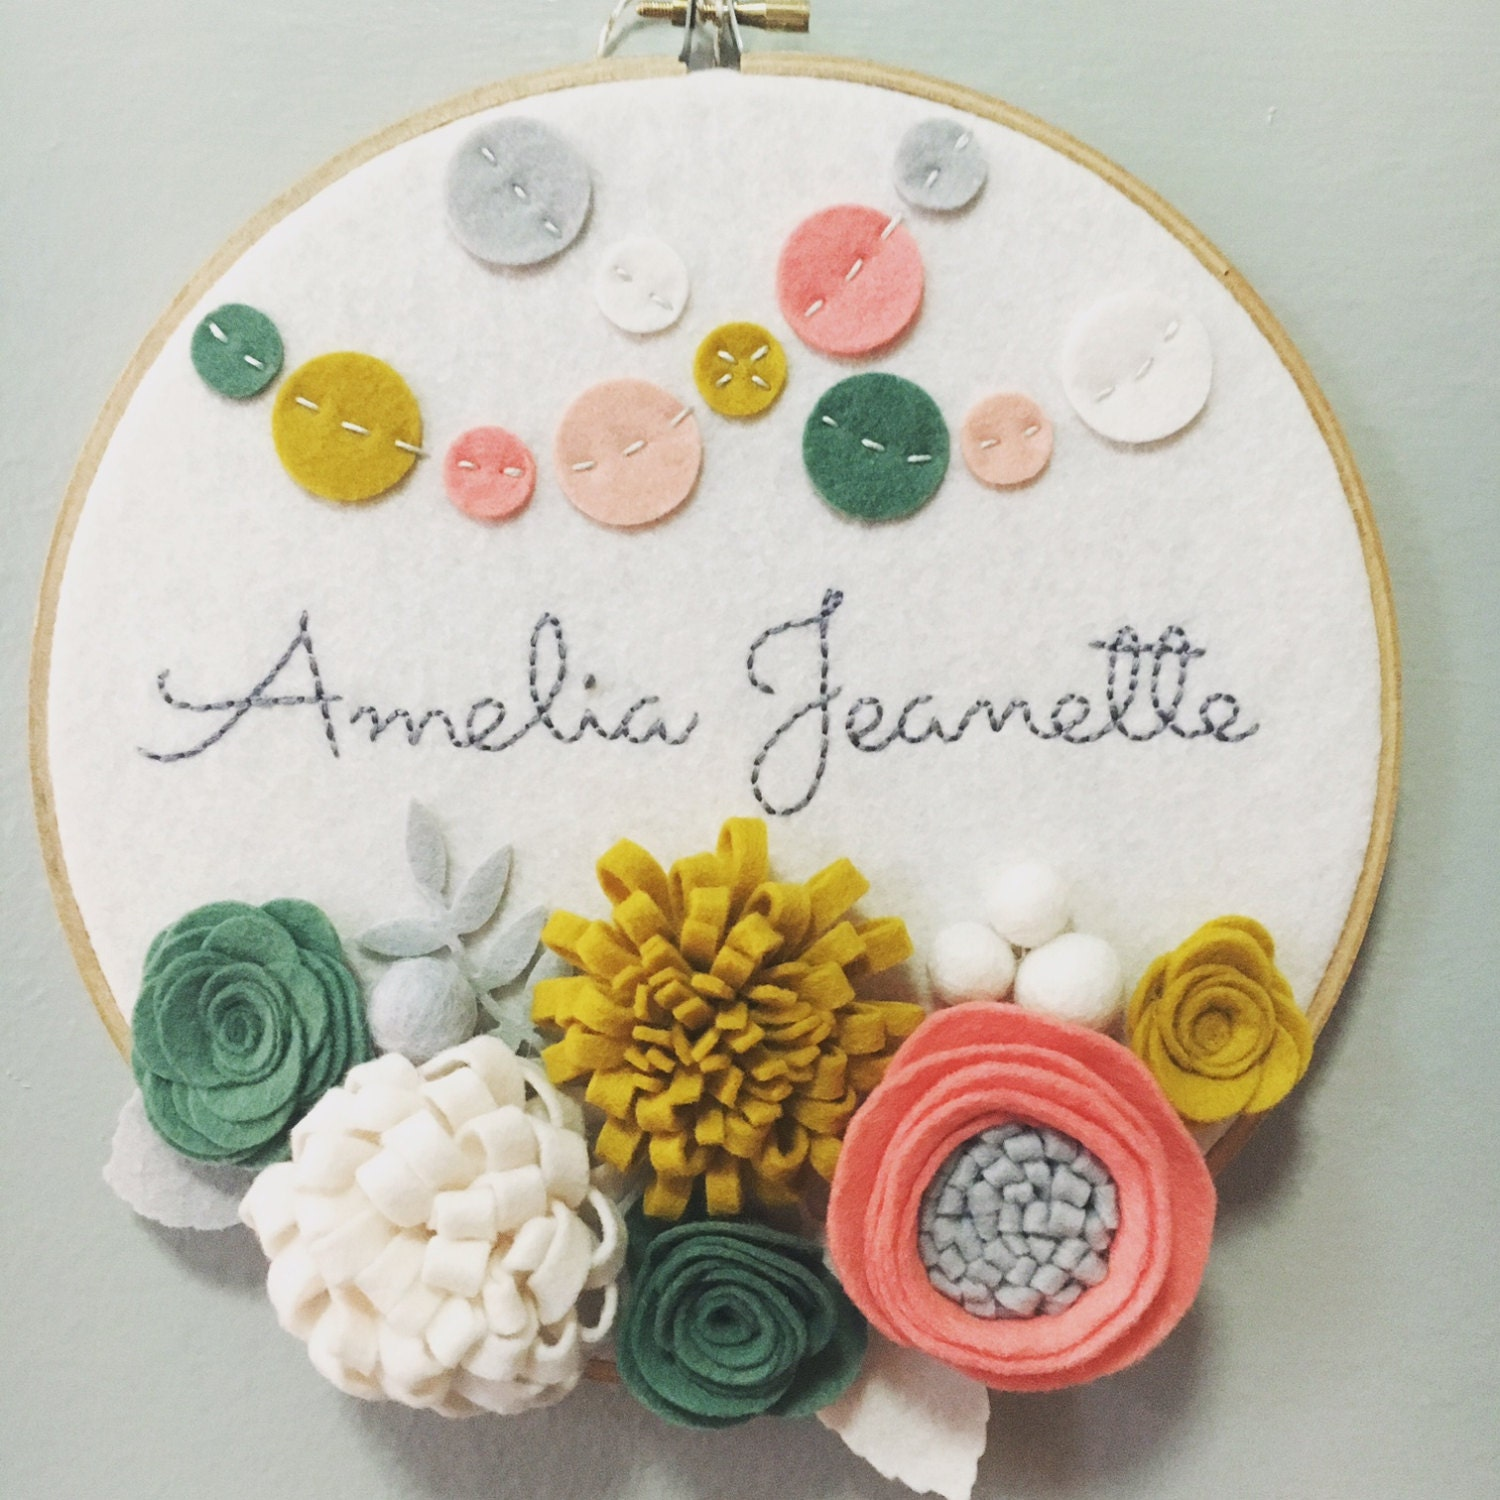 Custom embroidery hoop art wall baby shower gift by